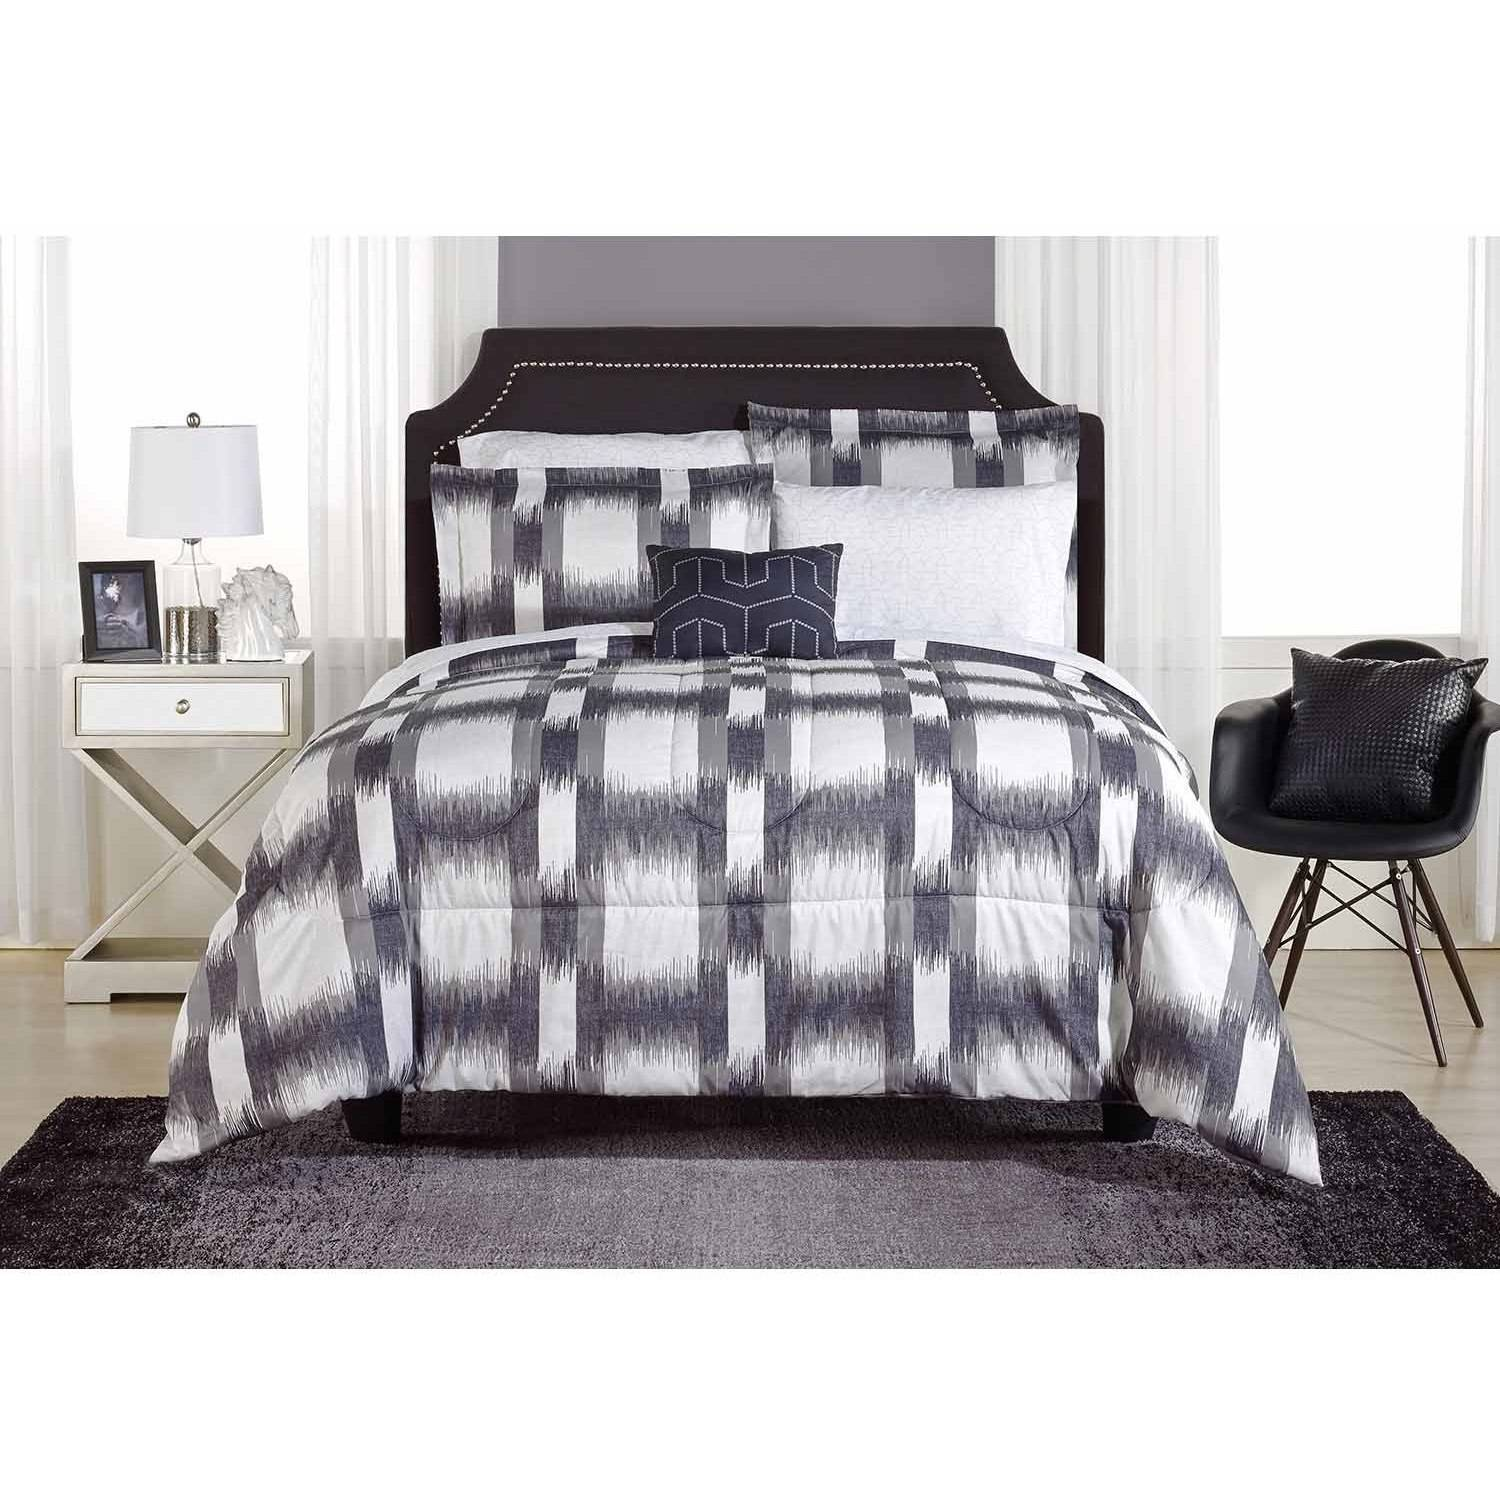 Mainstays Emerson Plaid Bed-in-a-Bag Bedding Set